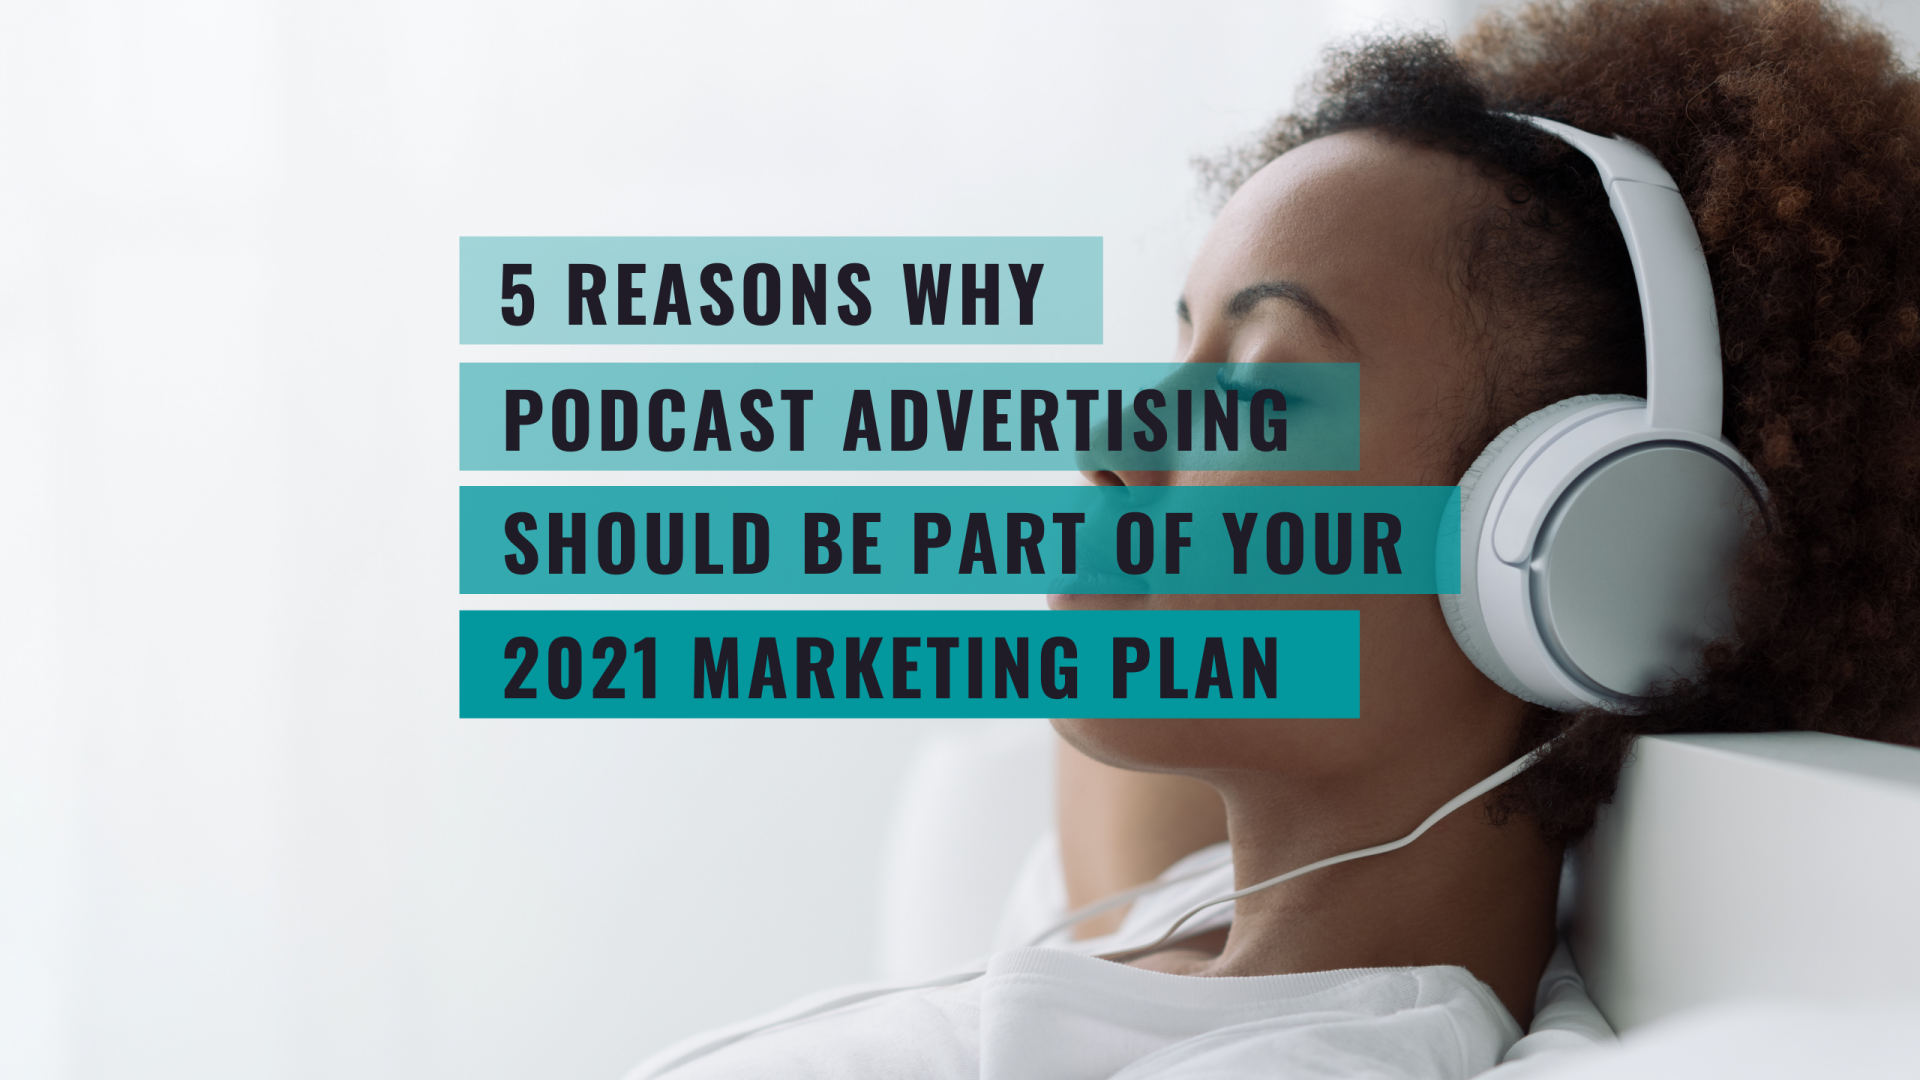 Marketers are adding podcast advertising into their 2021 marketing plan